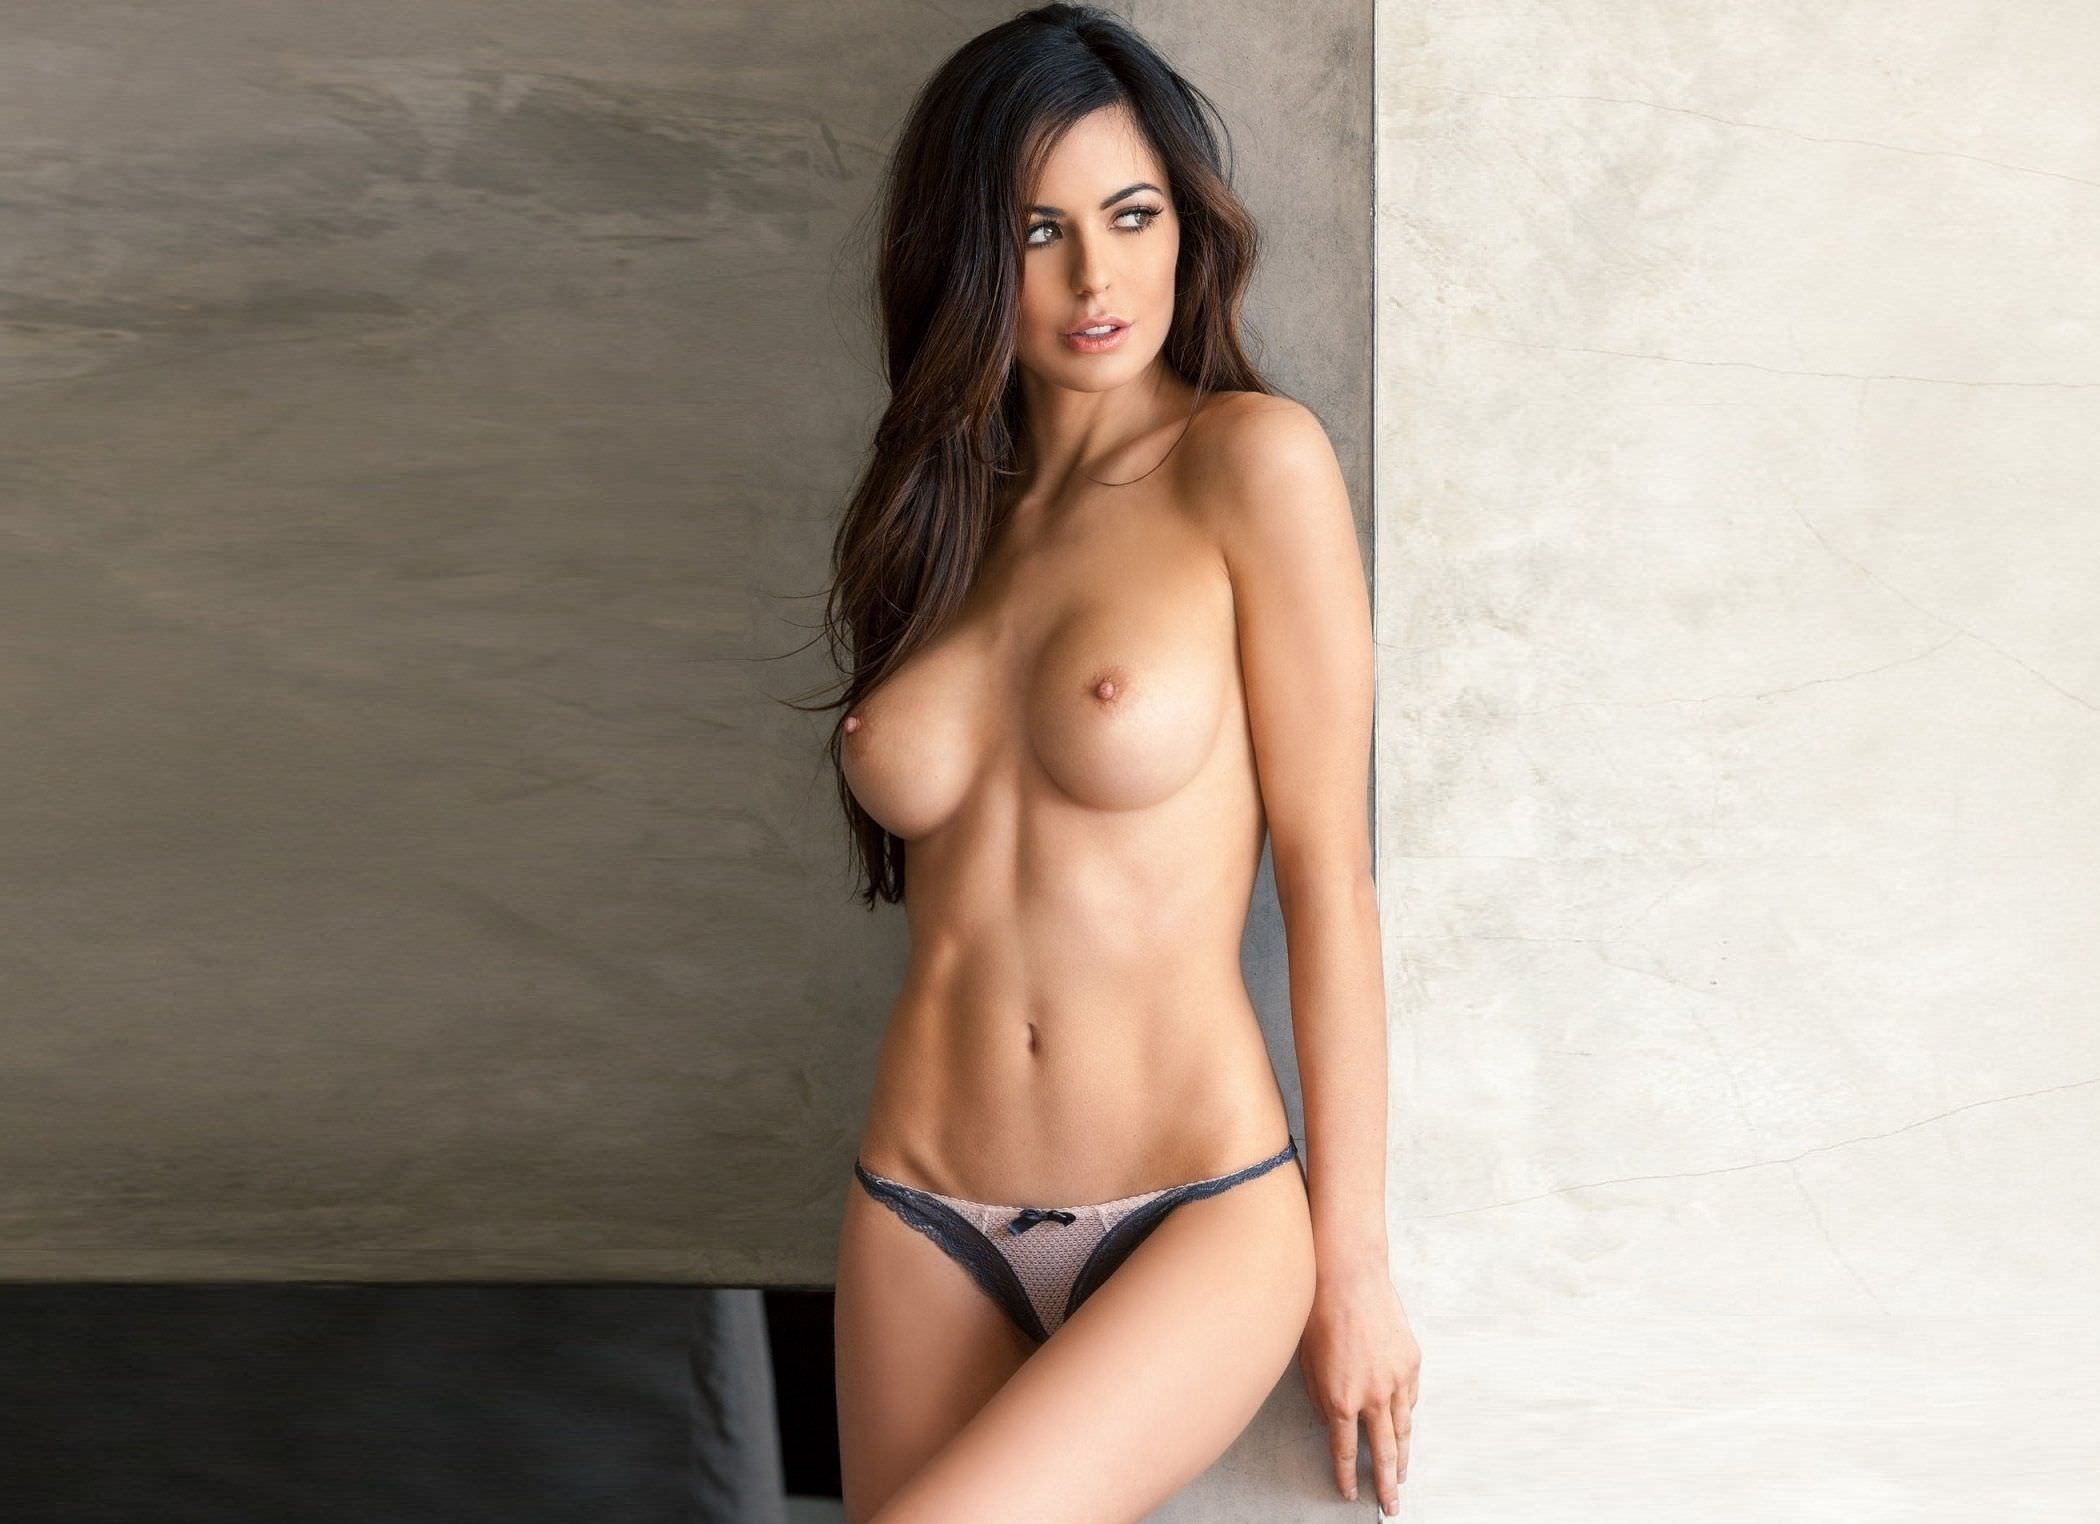 Beautiful brunette girl fashion model with naked shoulders and w stock image